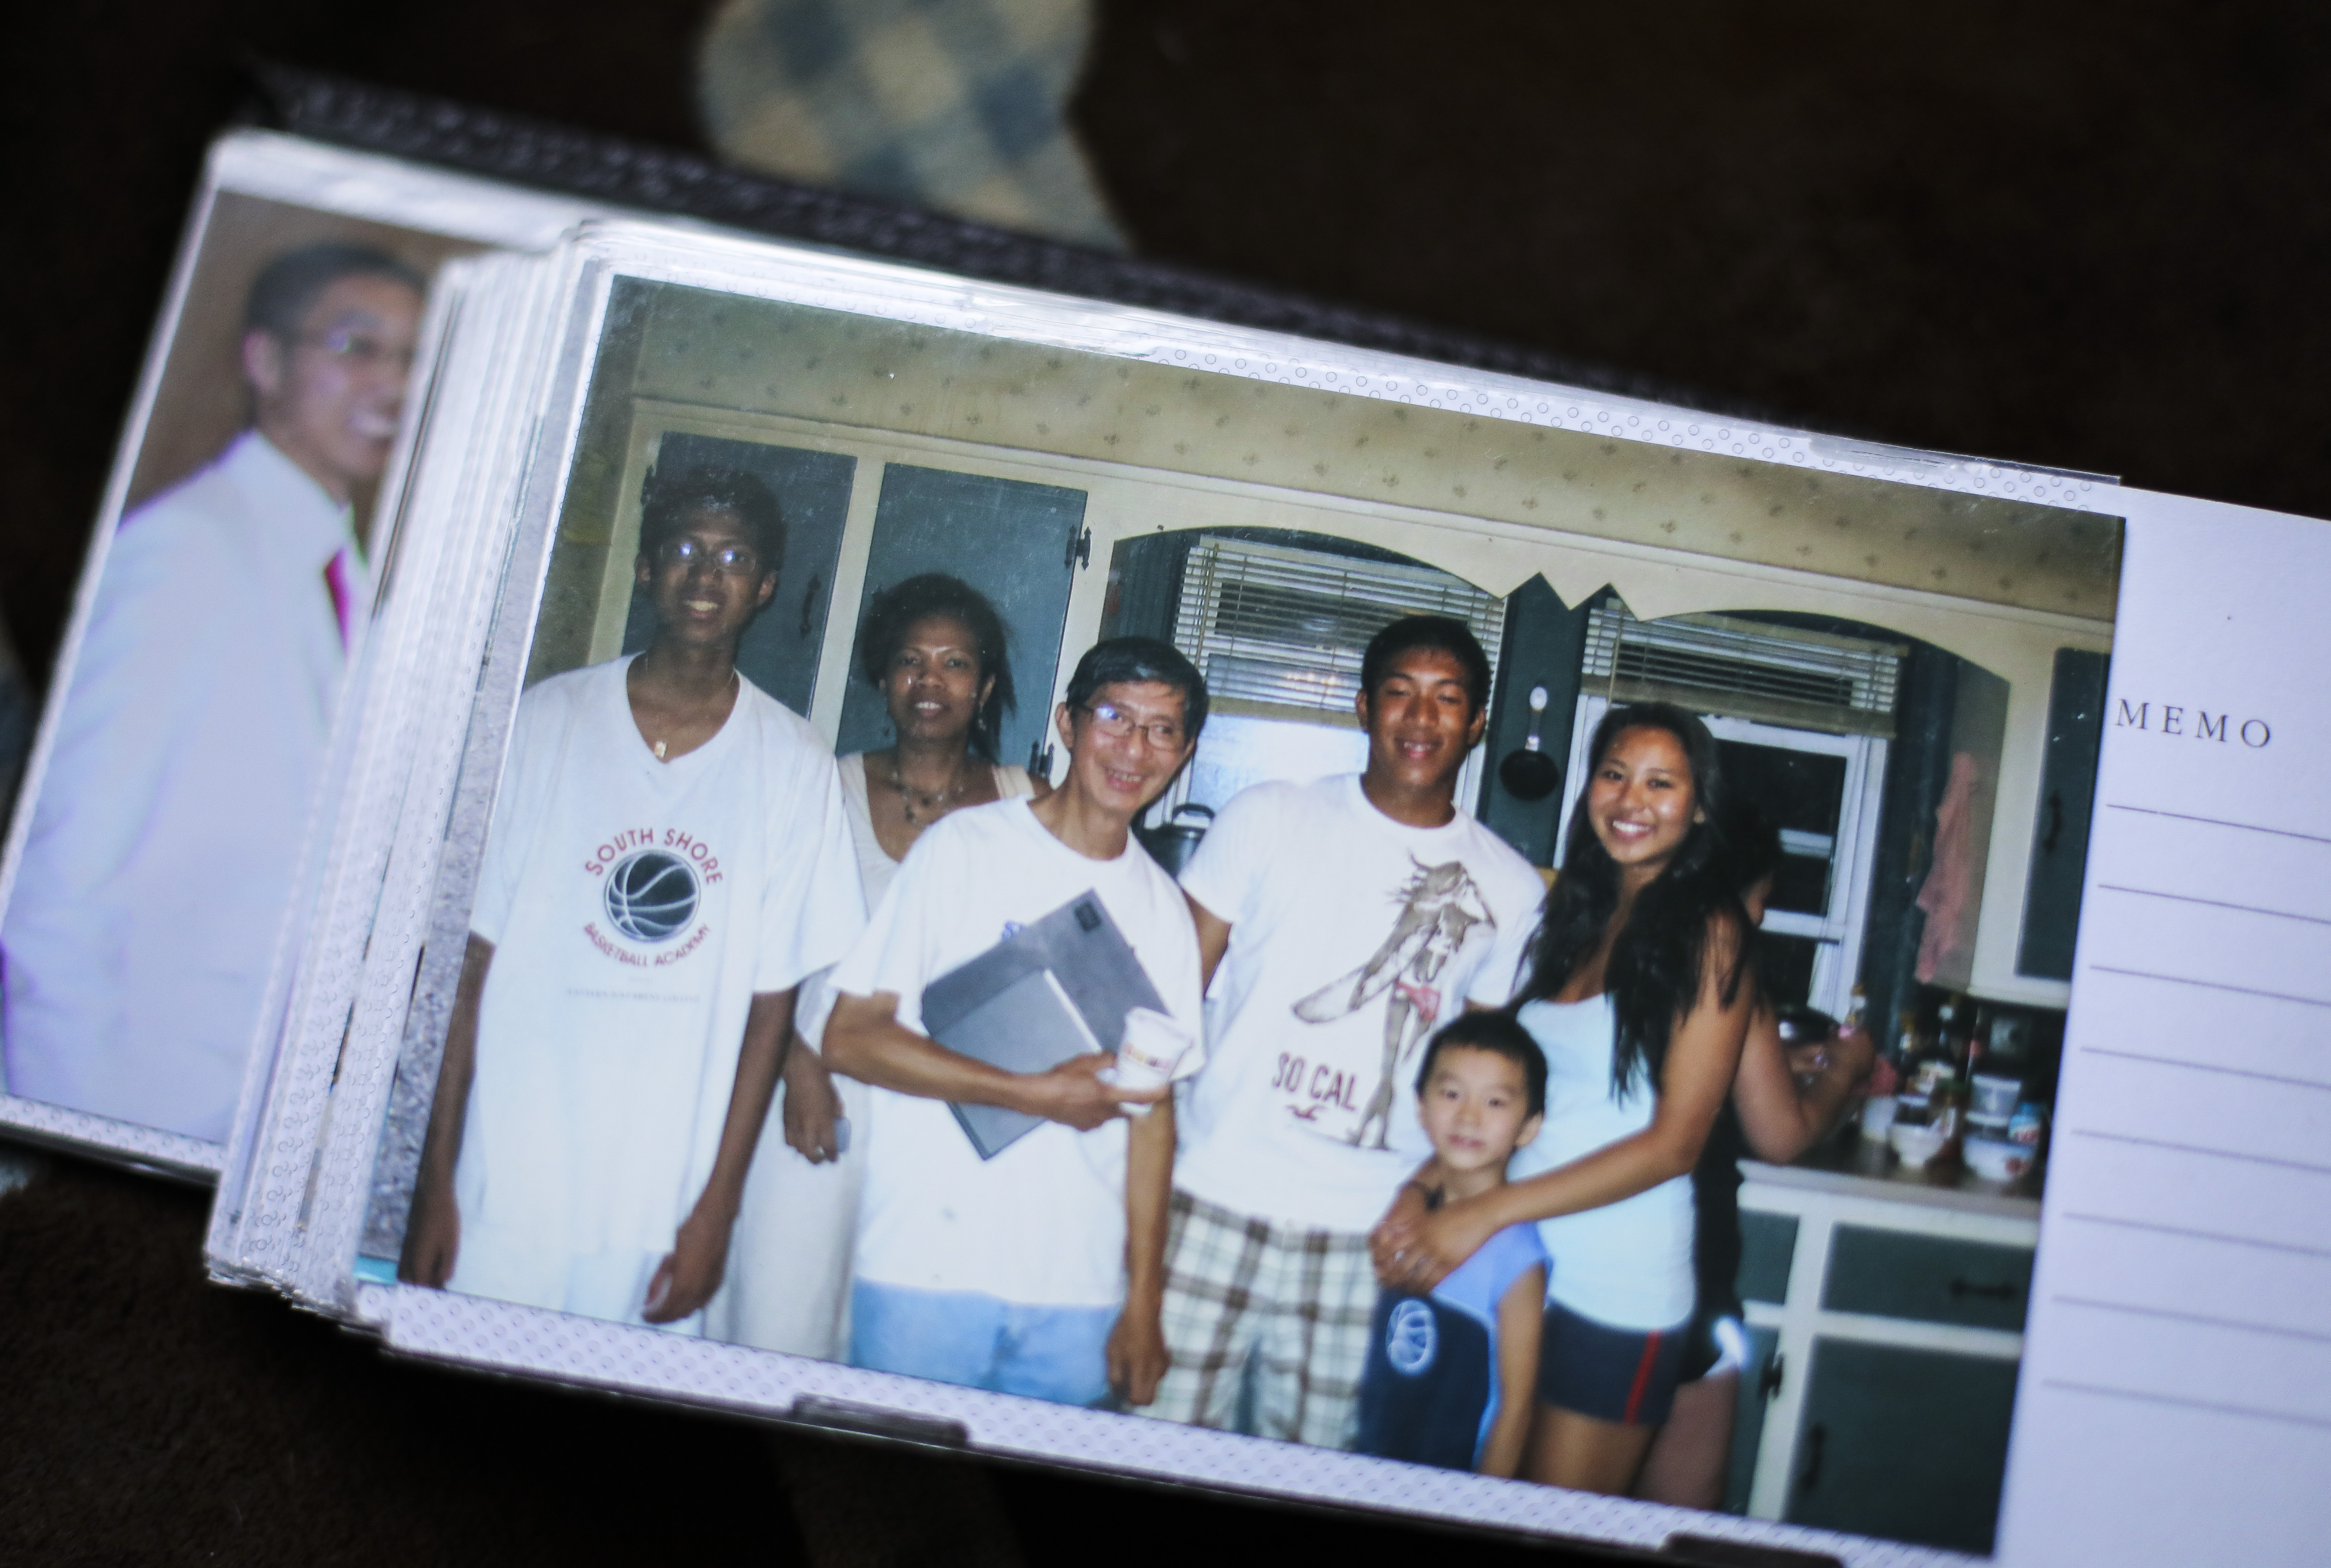 A photo of Liem Tran (third from left) from around five years ago sat in an album of family photos.